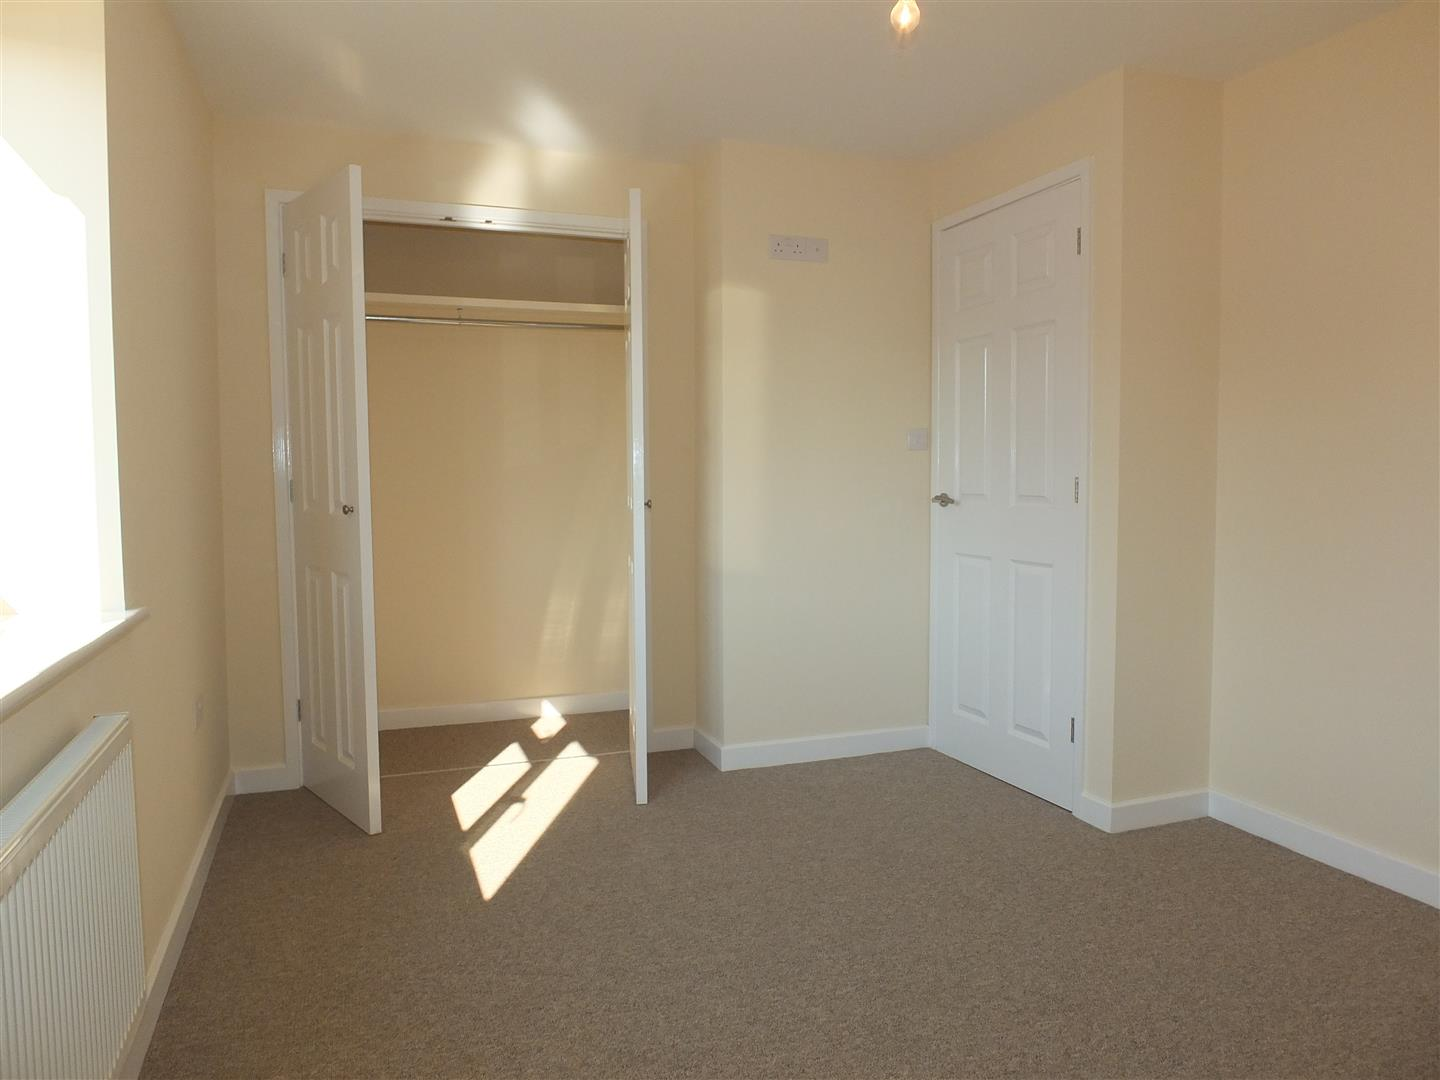 2 bed house to rent in Long Sutton, PE12 9LE 7